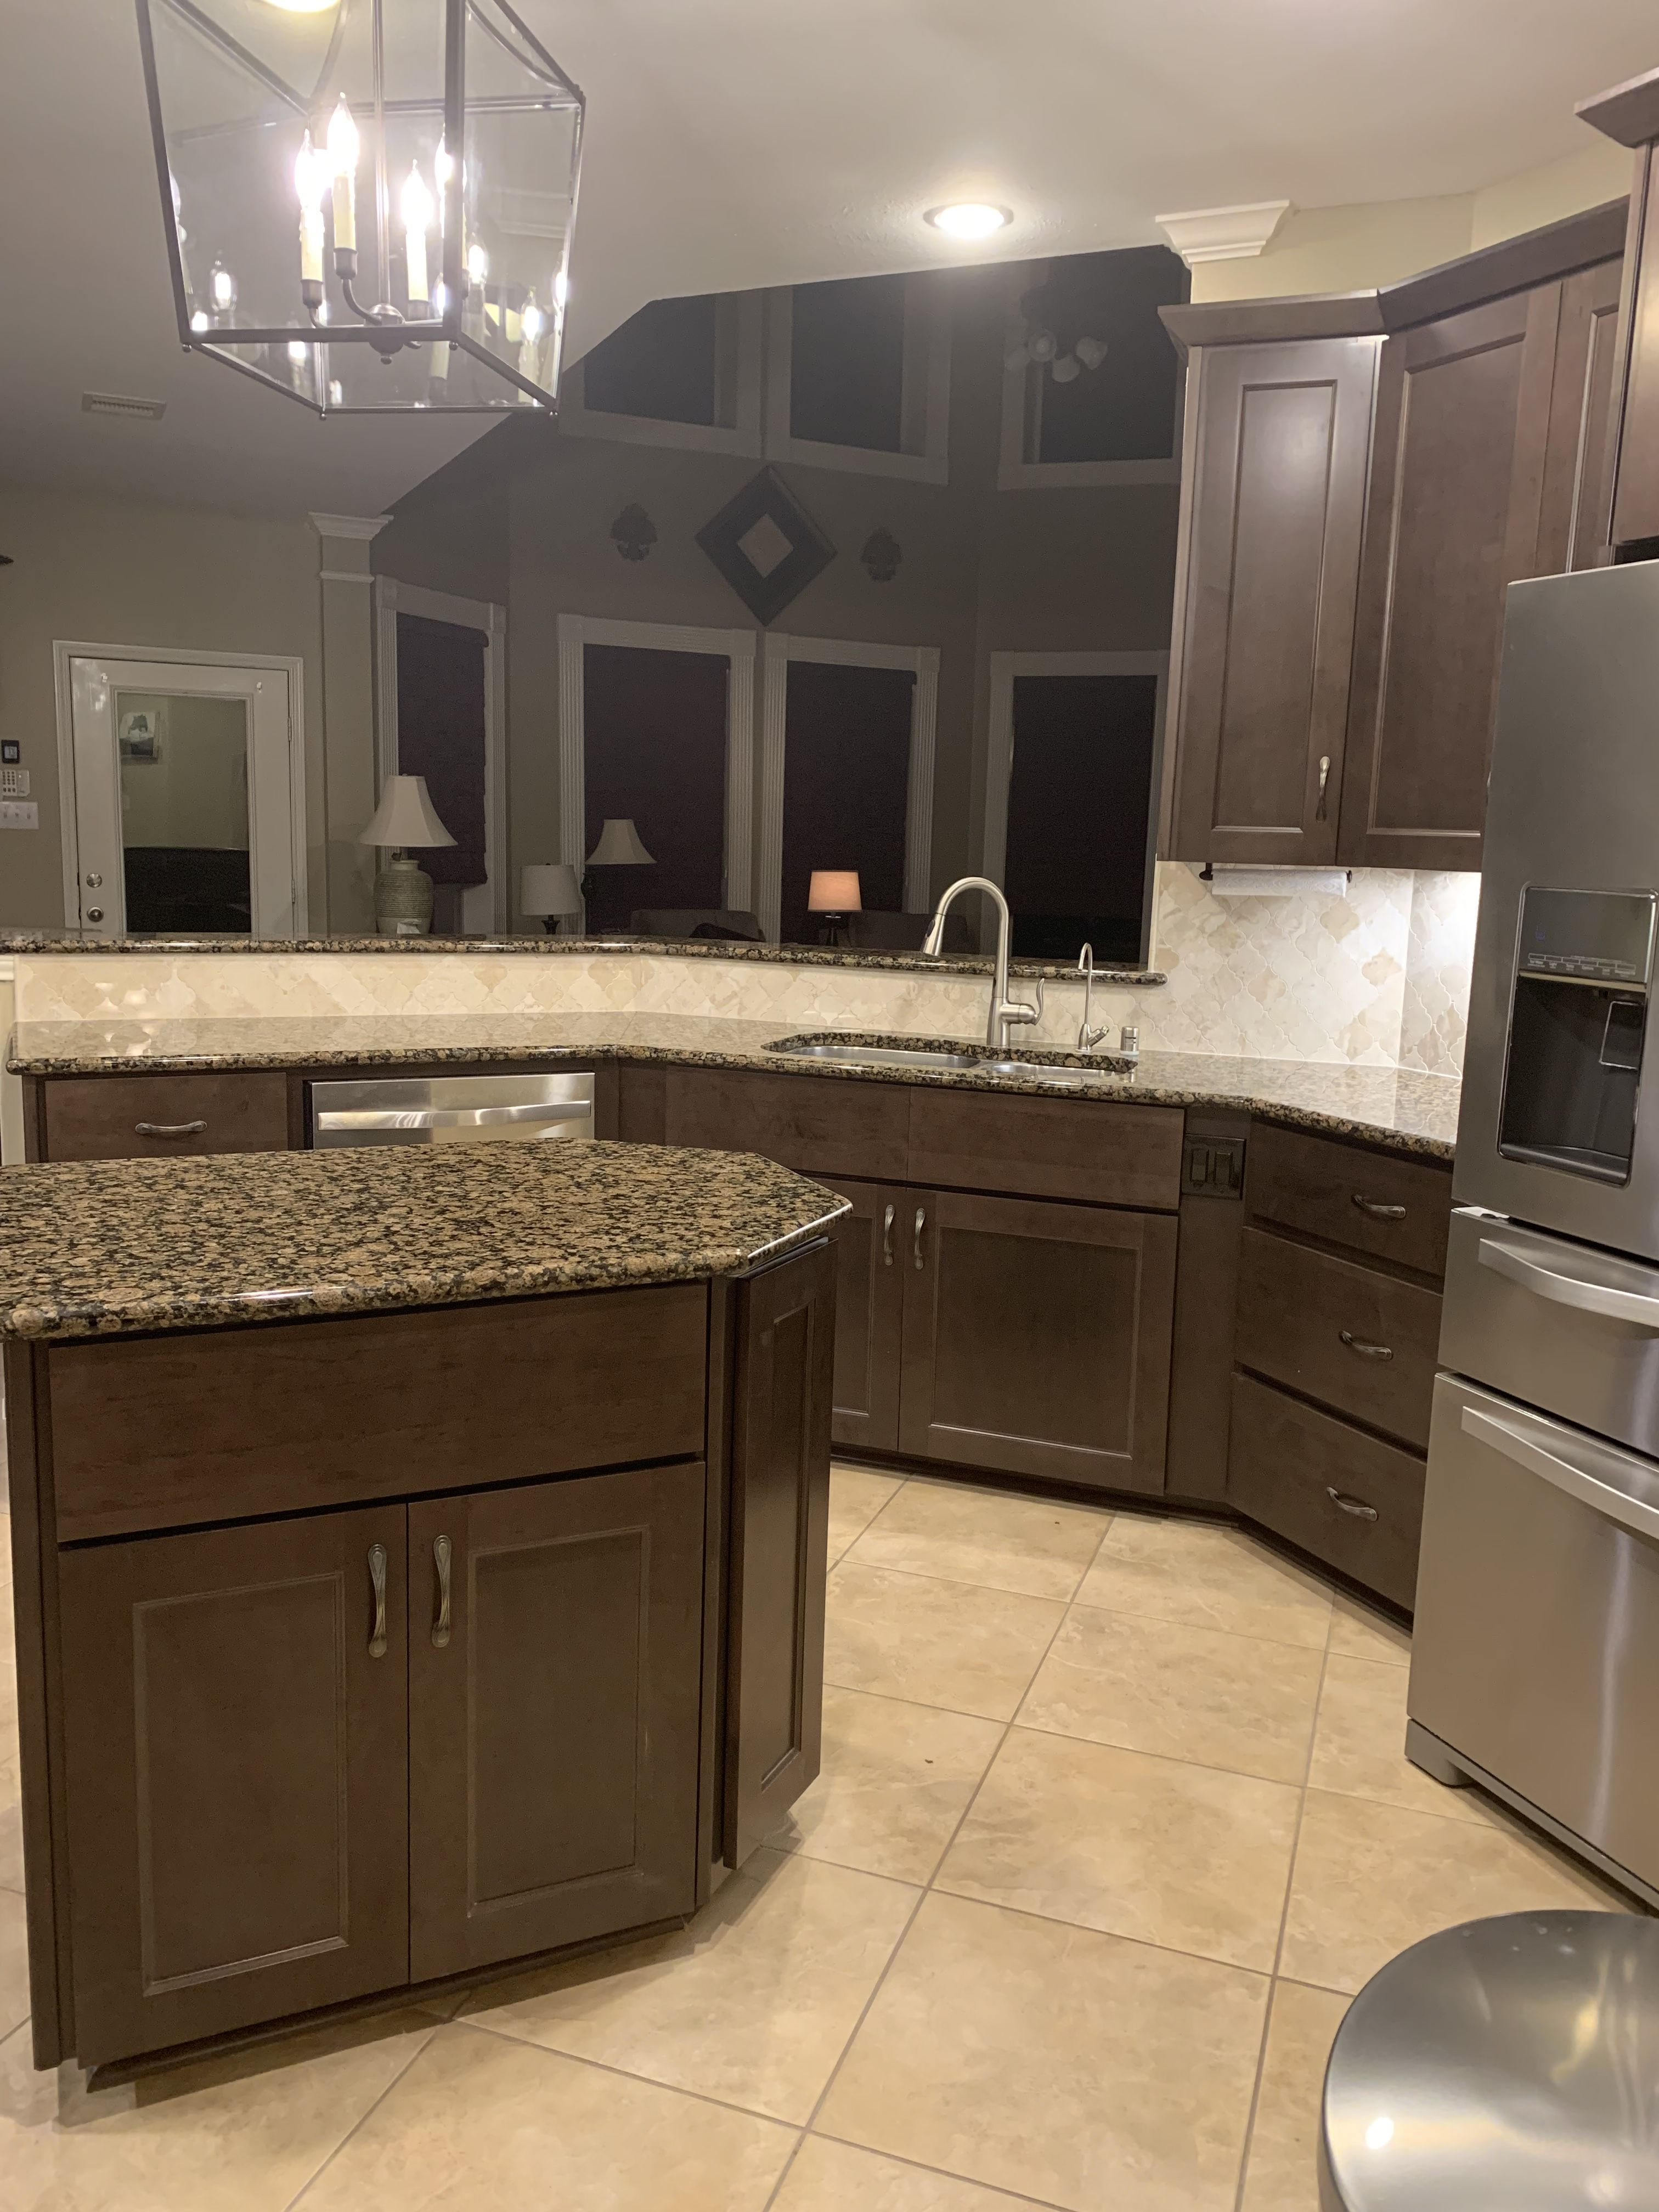 National Service Cabinet Refacing Kitchen Tune Up Refacing Kitchen Cabinets Cabinet Refacing Reface